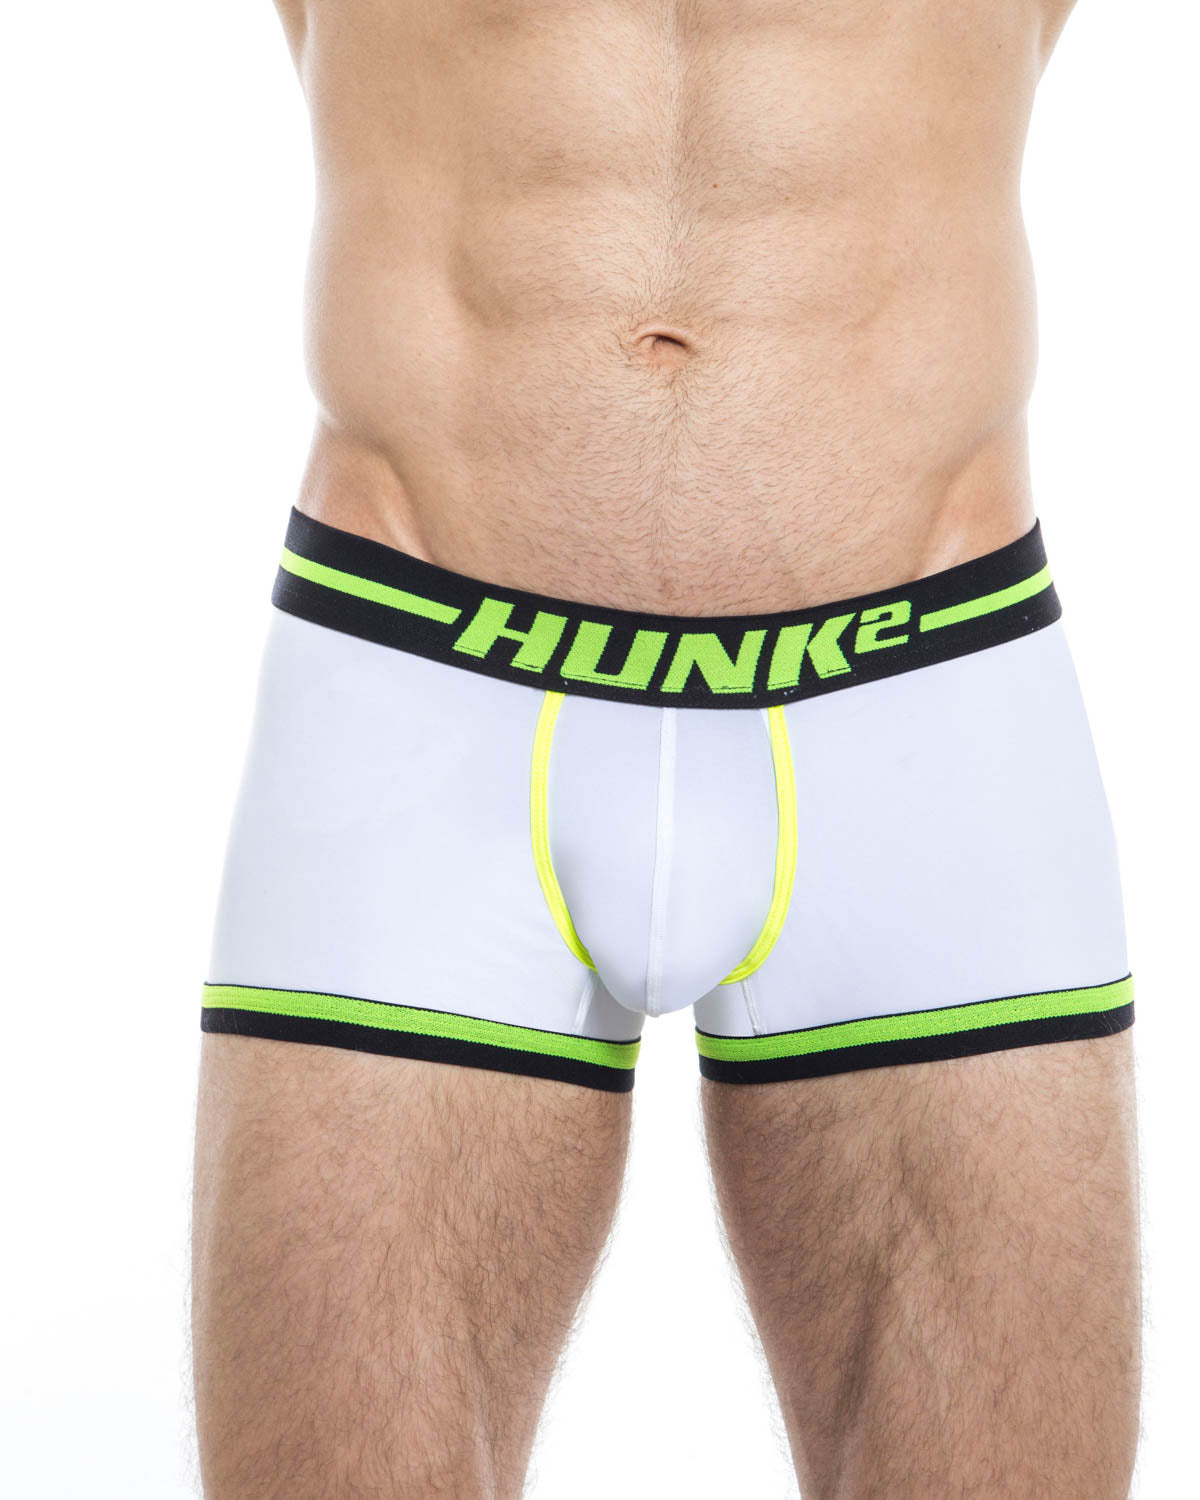 Men's trunk underwear - HUNK2 Underwear Alphae Neon Trunks available at MensUnderwear.io - Image 1